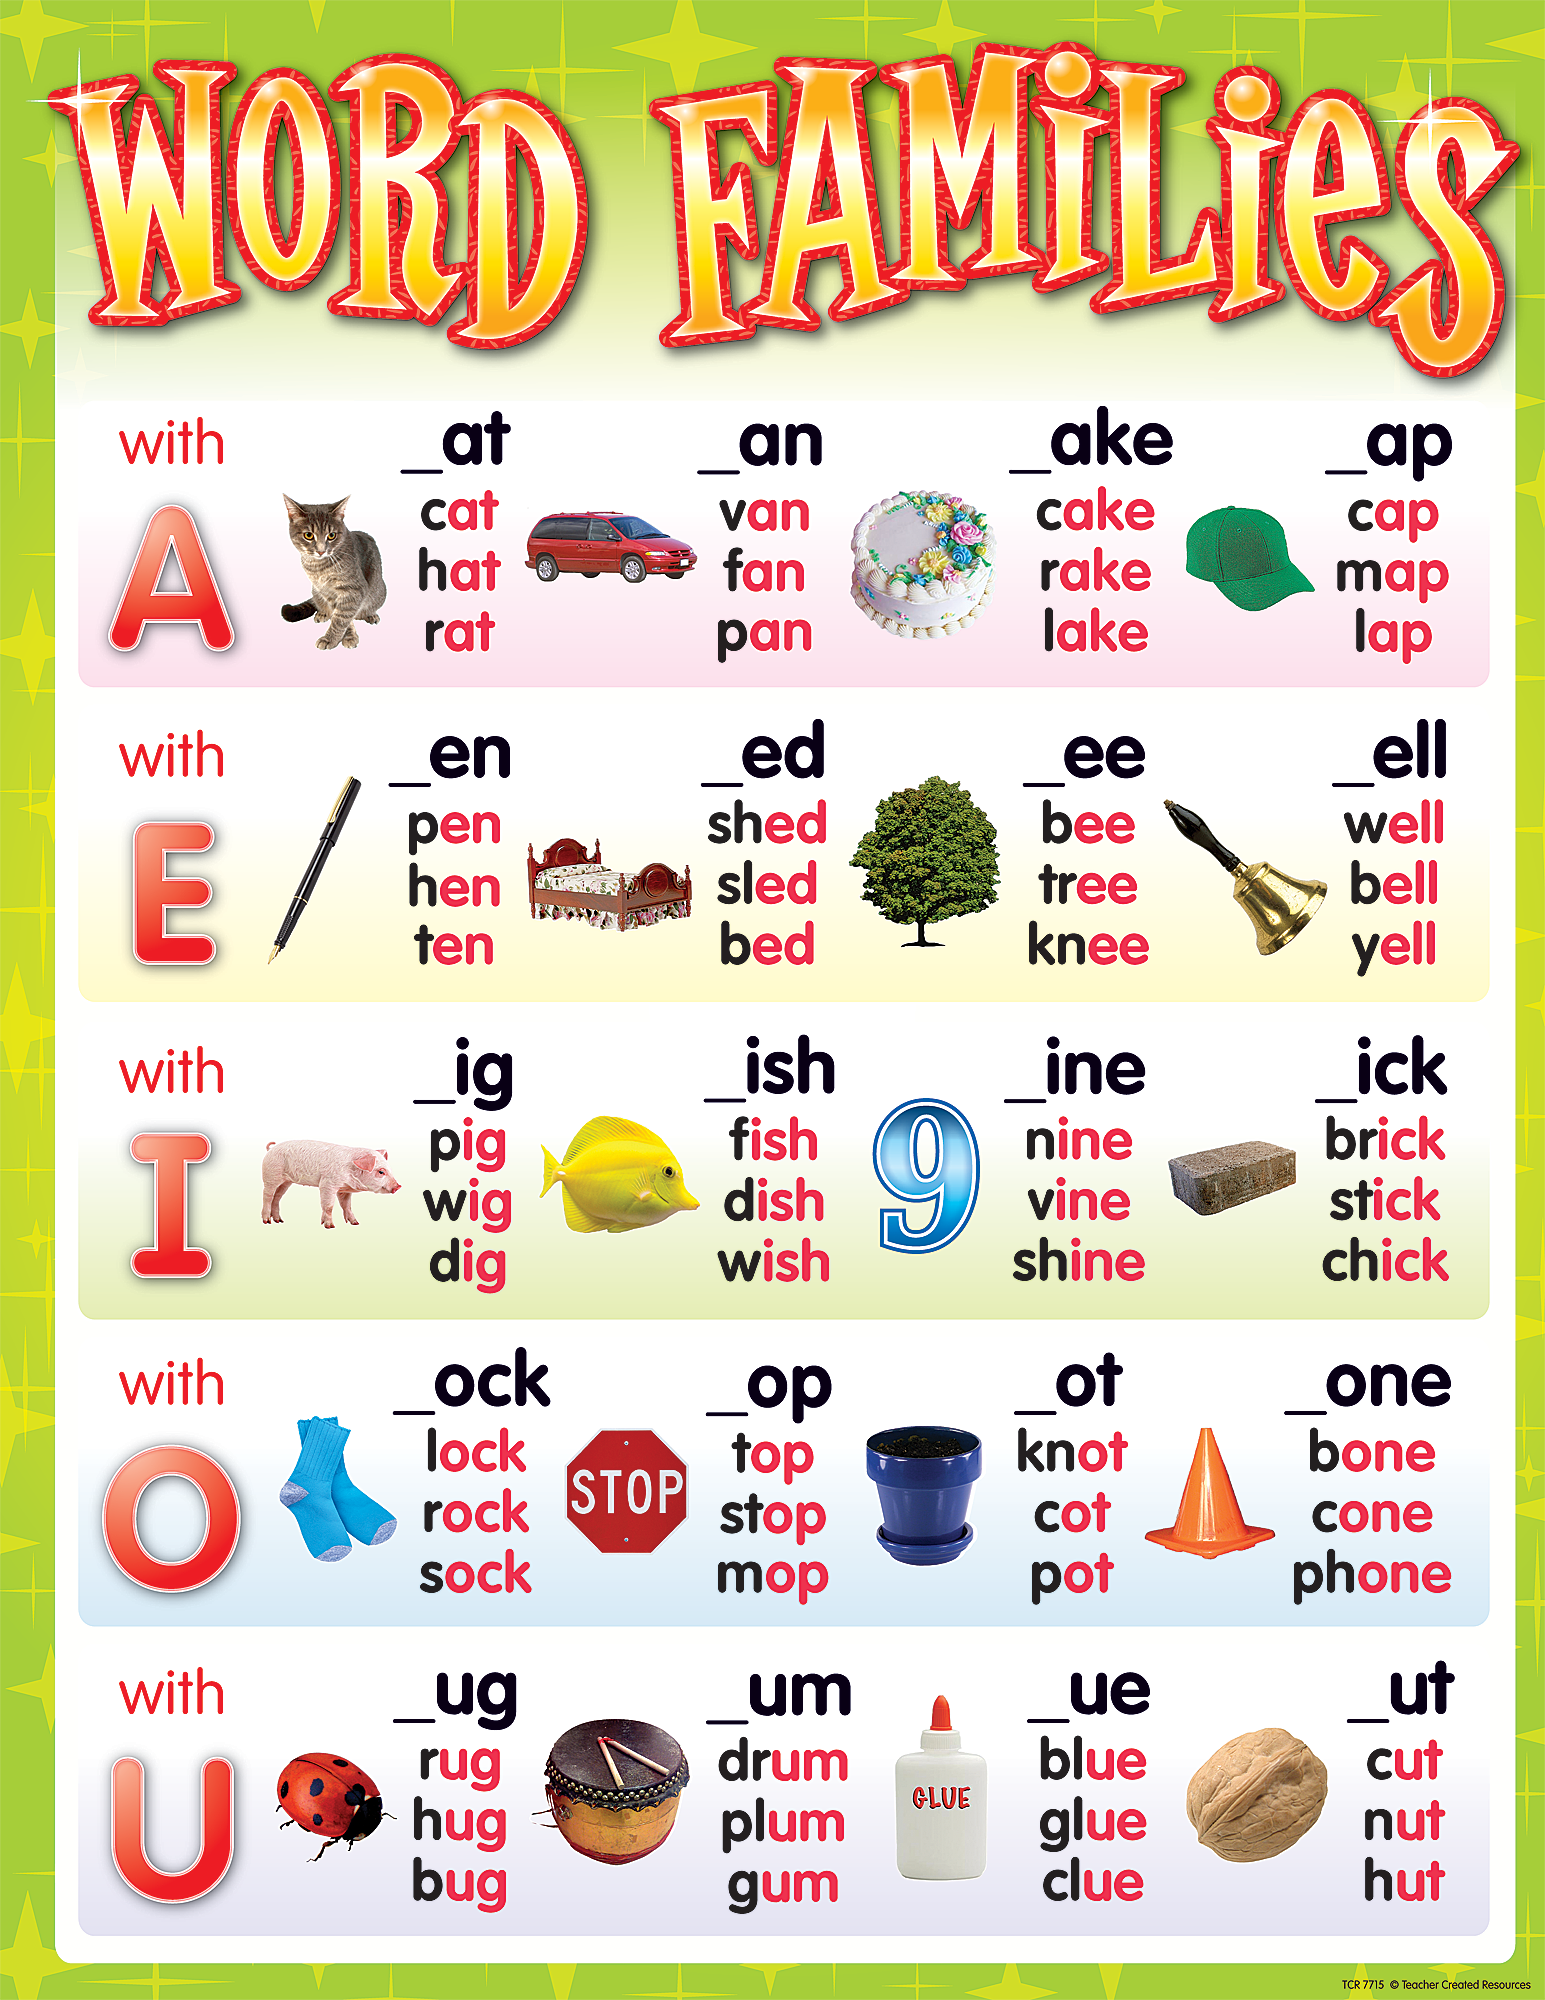 Word Families Chart 7715 on Blending Sounds Worksheets